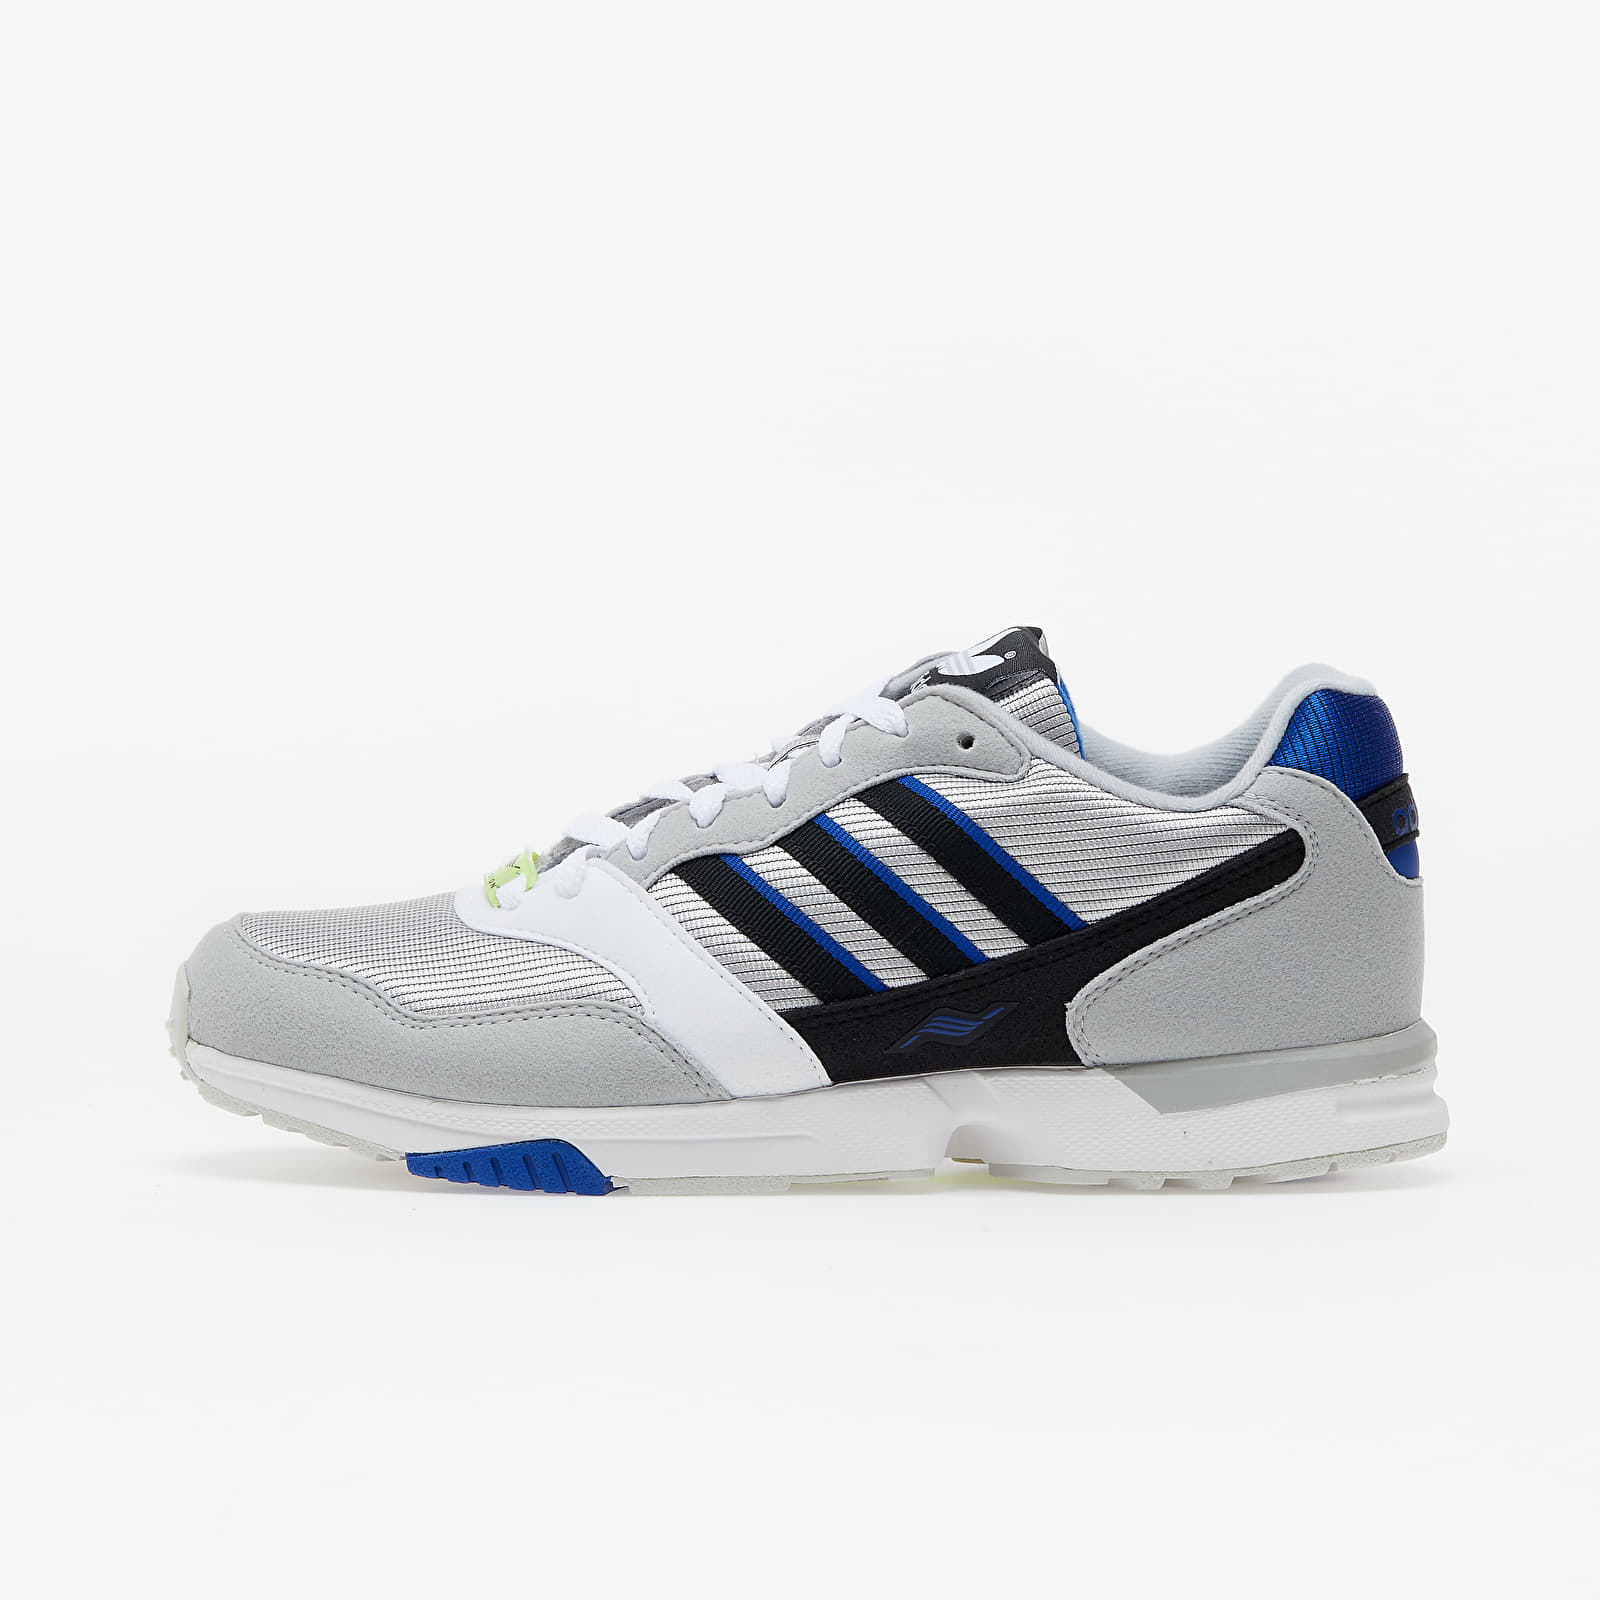 adidas ZX 1000 C Grey One/ Core Black/ Team Royal Blue EUR 46